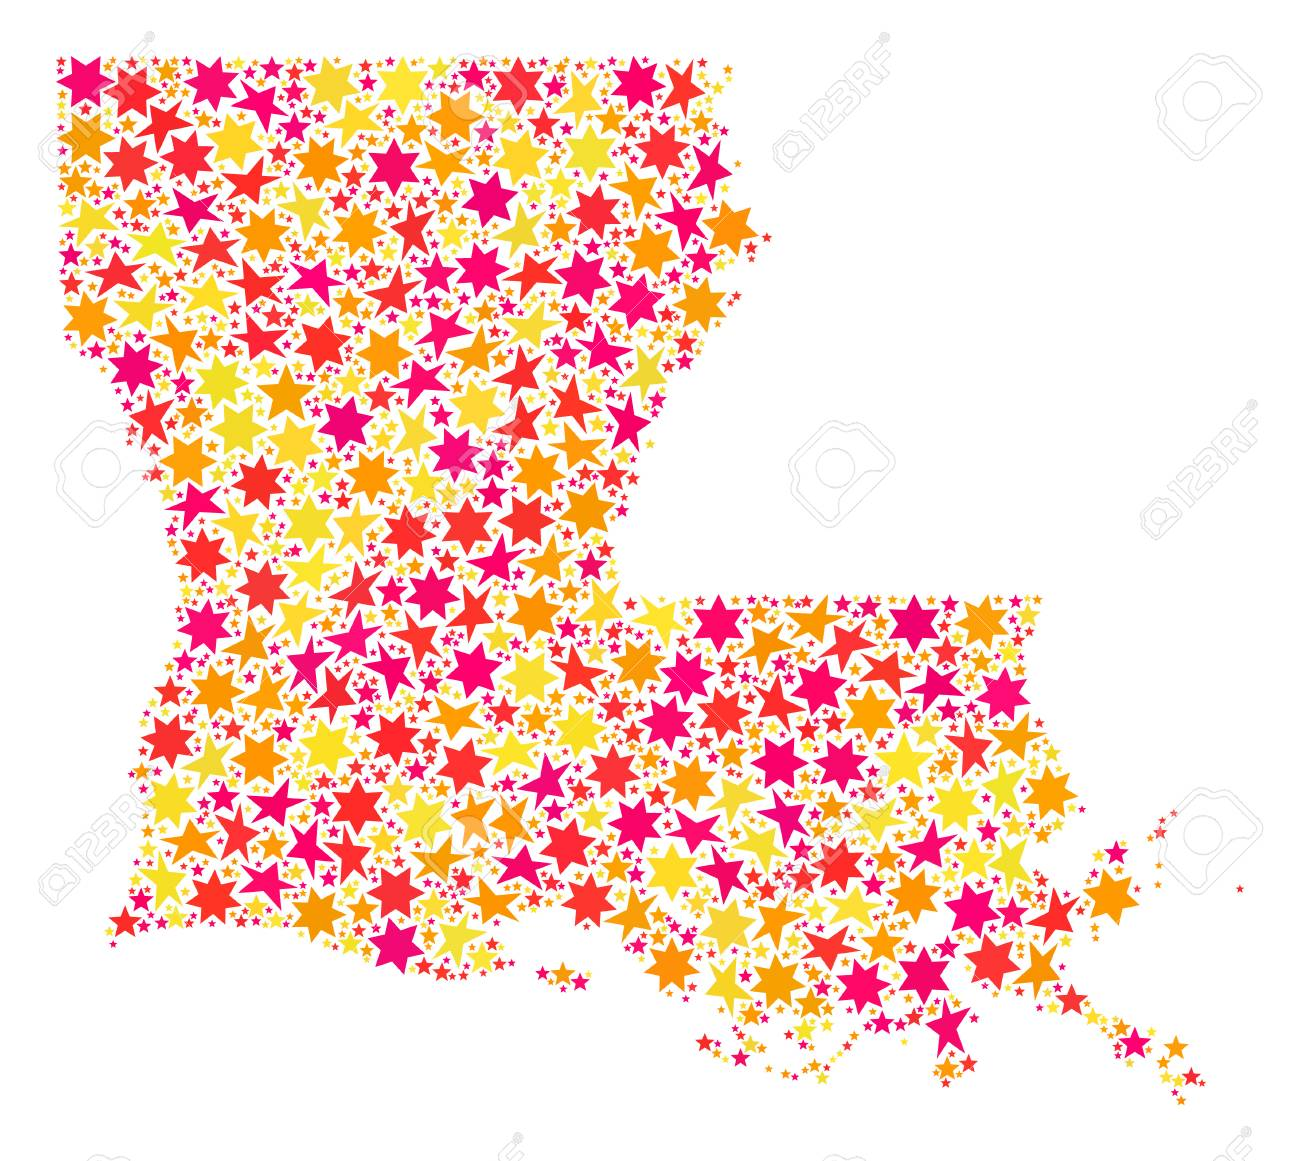 Geographic Map Of Louisiana.Collage Map Of Louisiana State Formed With Colored Flat Stars